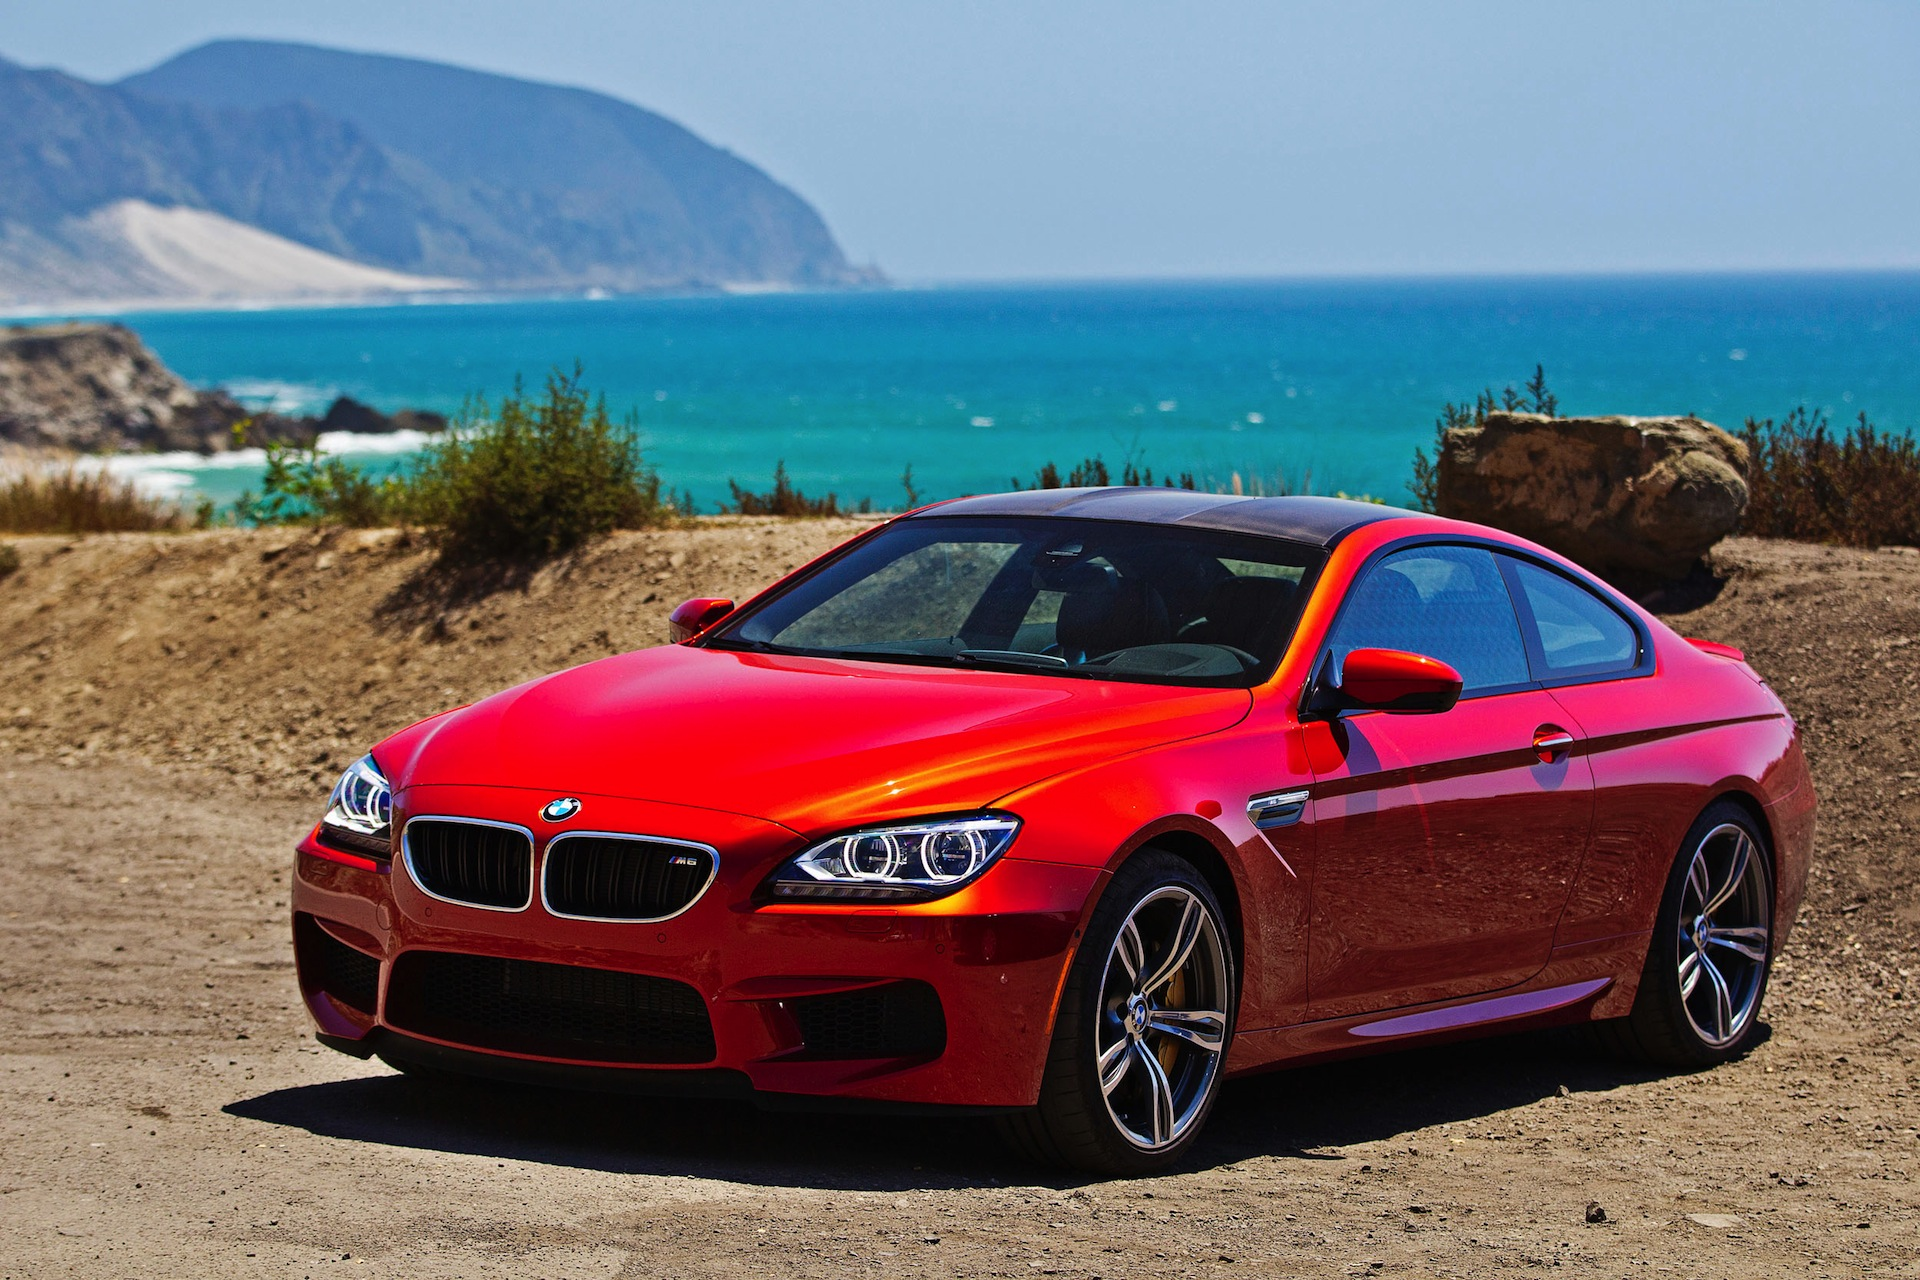 Pin by Wade Howard on Automotive | Pinterest | Bmw m6, Dream cars ...